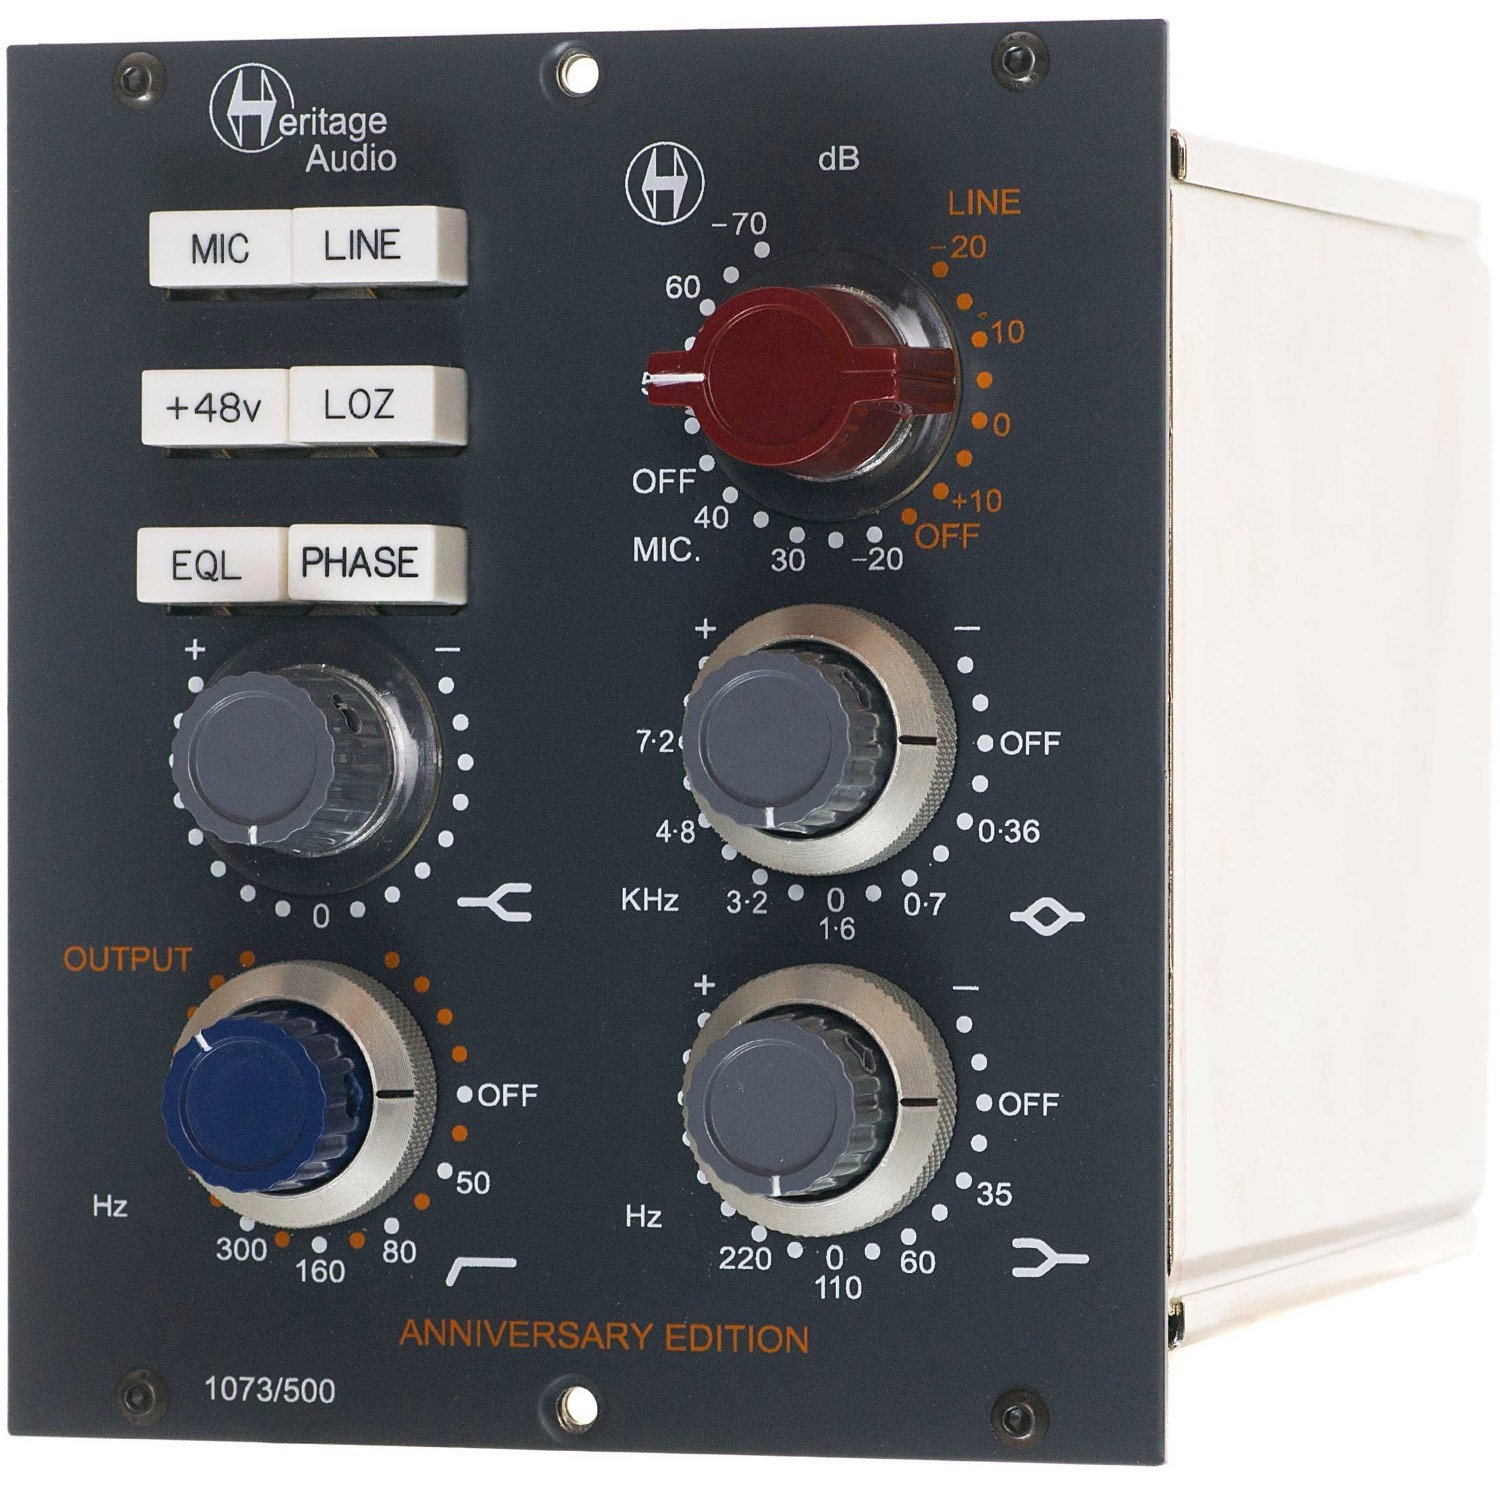 Heritage Audio 500 Series Mic Pre Eq Pro Solutions Amplifier Circuit With 2n3055 P Marian Alternate